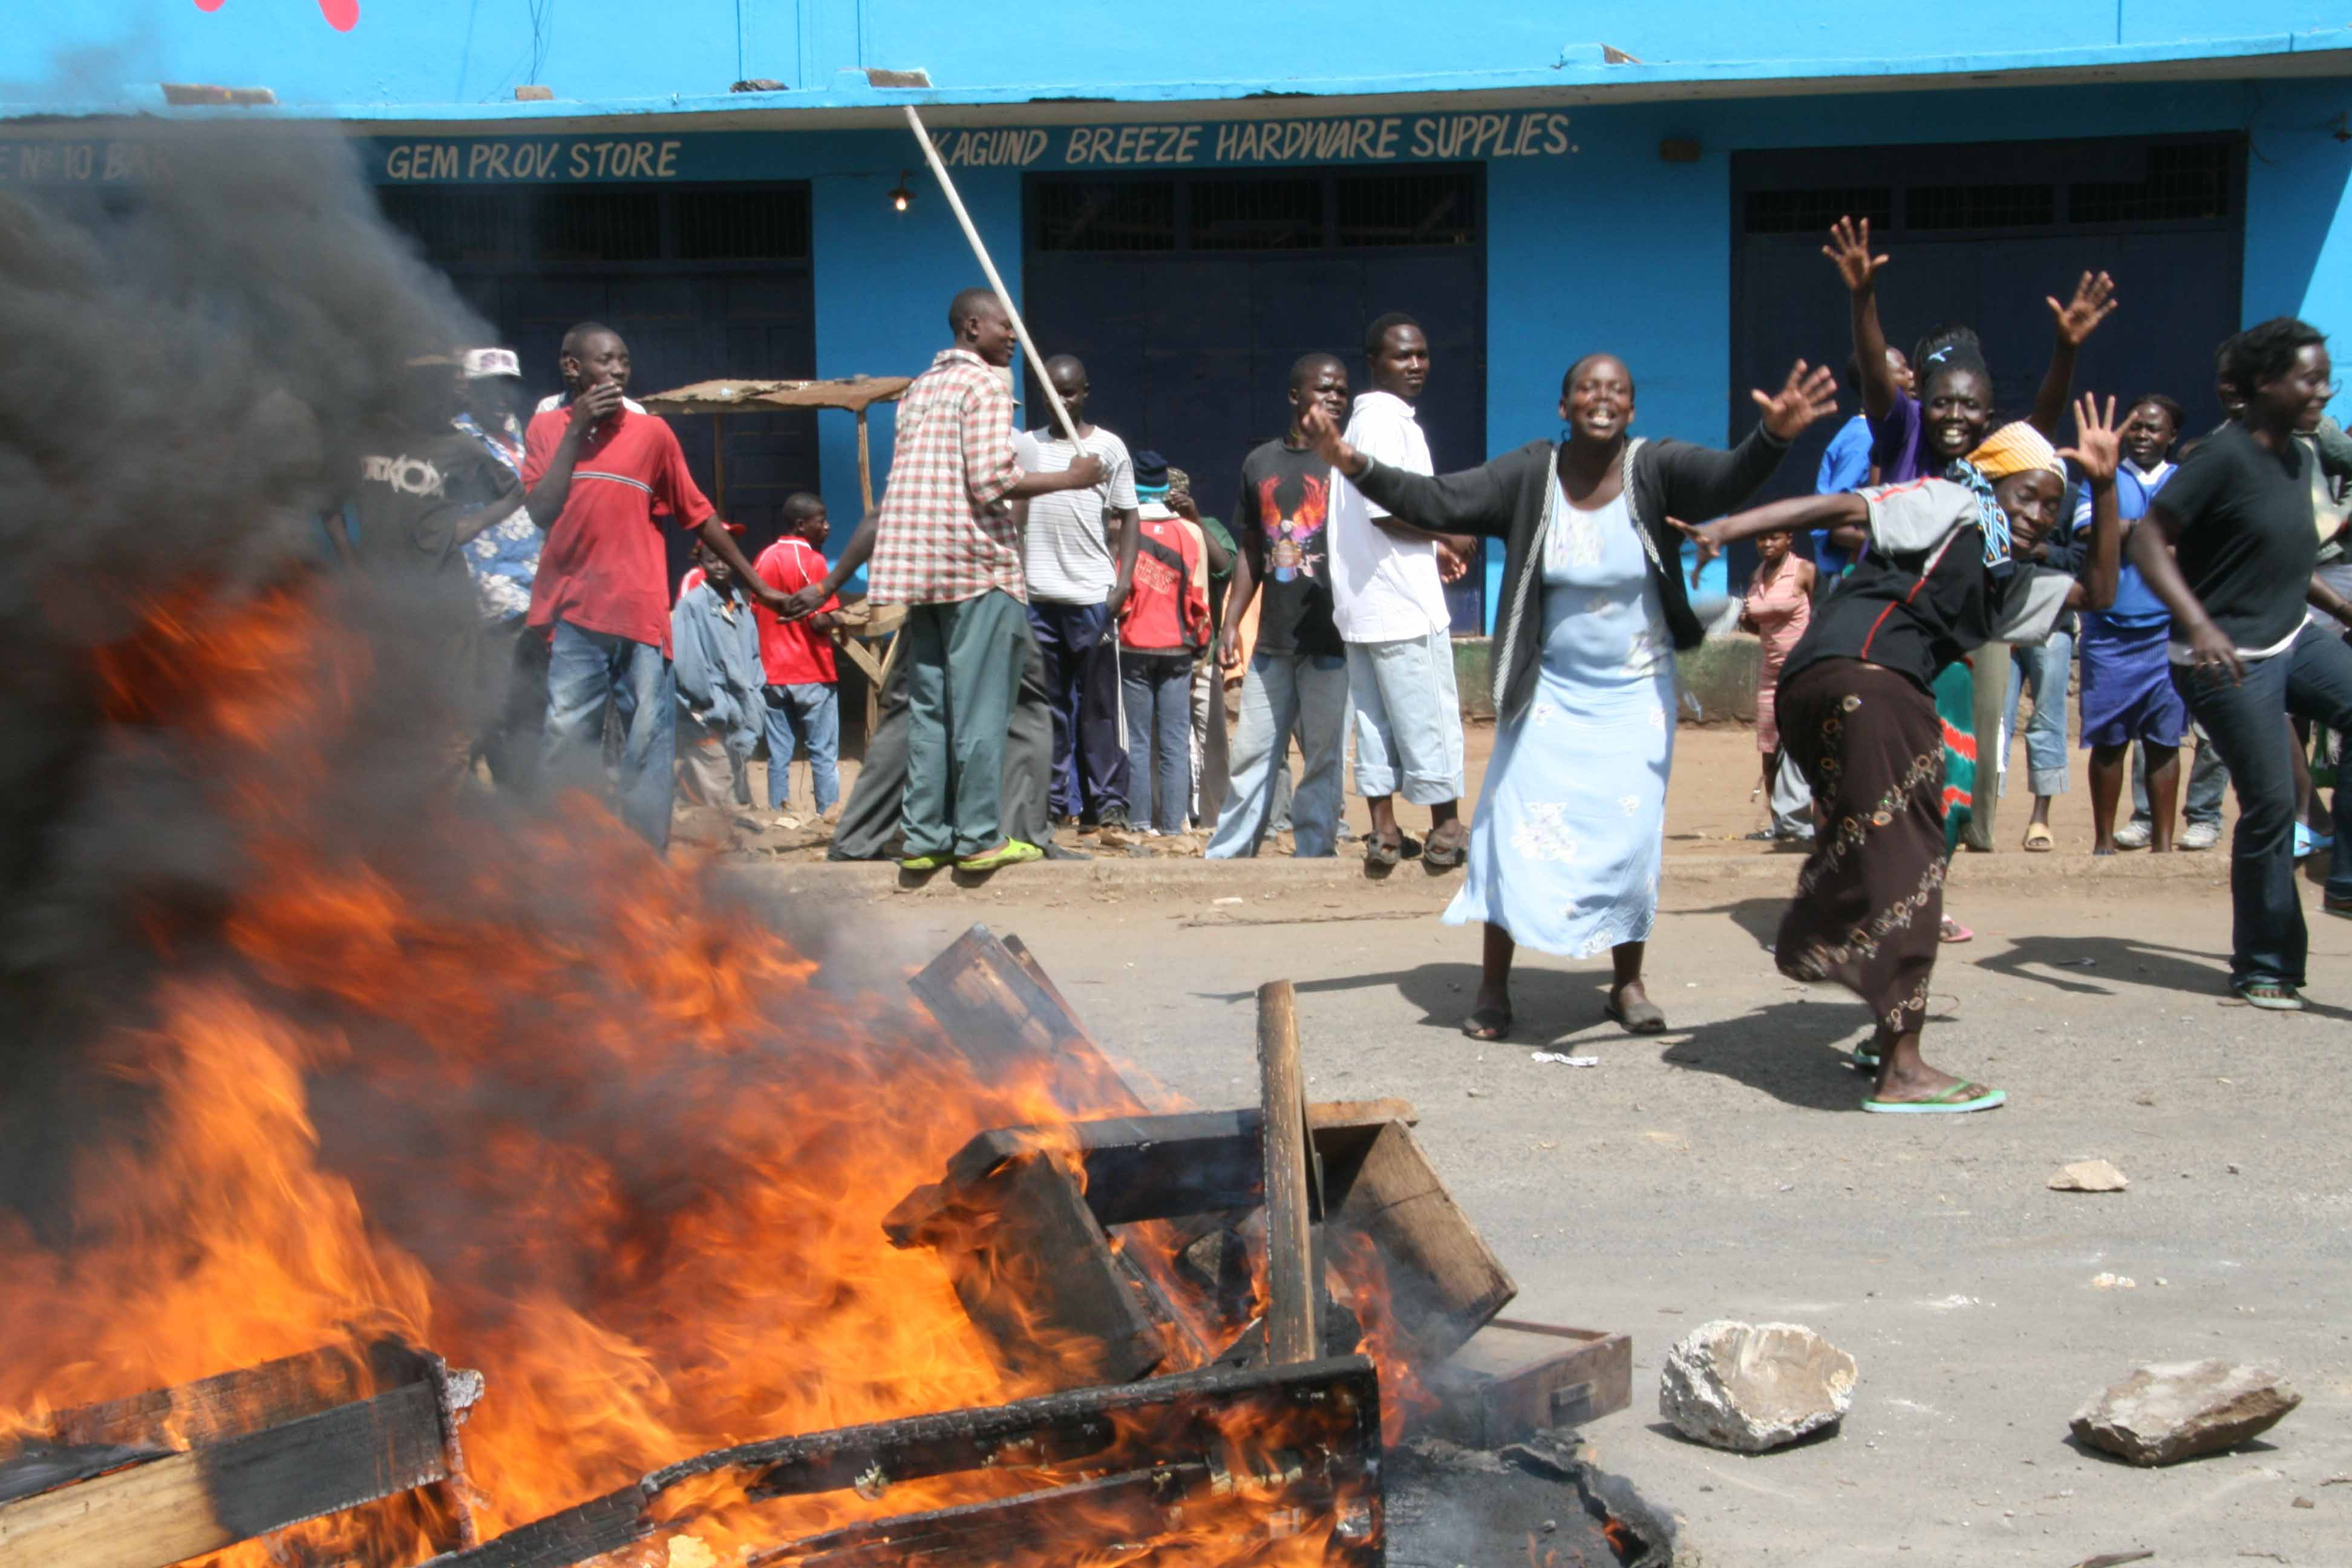 Opposition supporters in Kenya demonstrate against the current Government, Mathare, Kenya. January 2008. Post election violence has erupted in Kenya following the announcement of the poll results by the Electoral Commission naming president Mwai Kibaki as